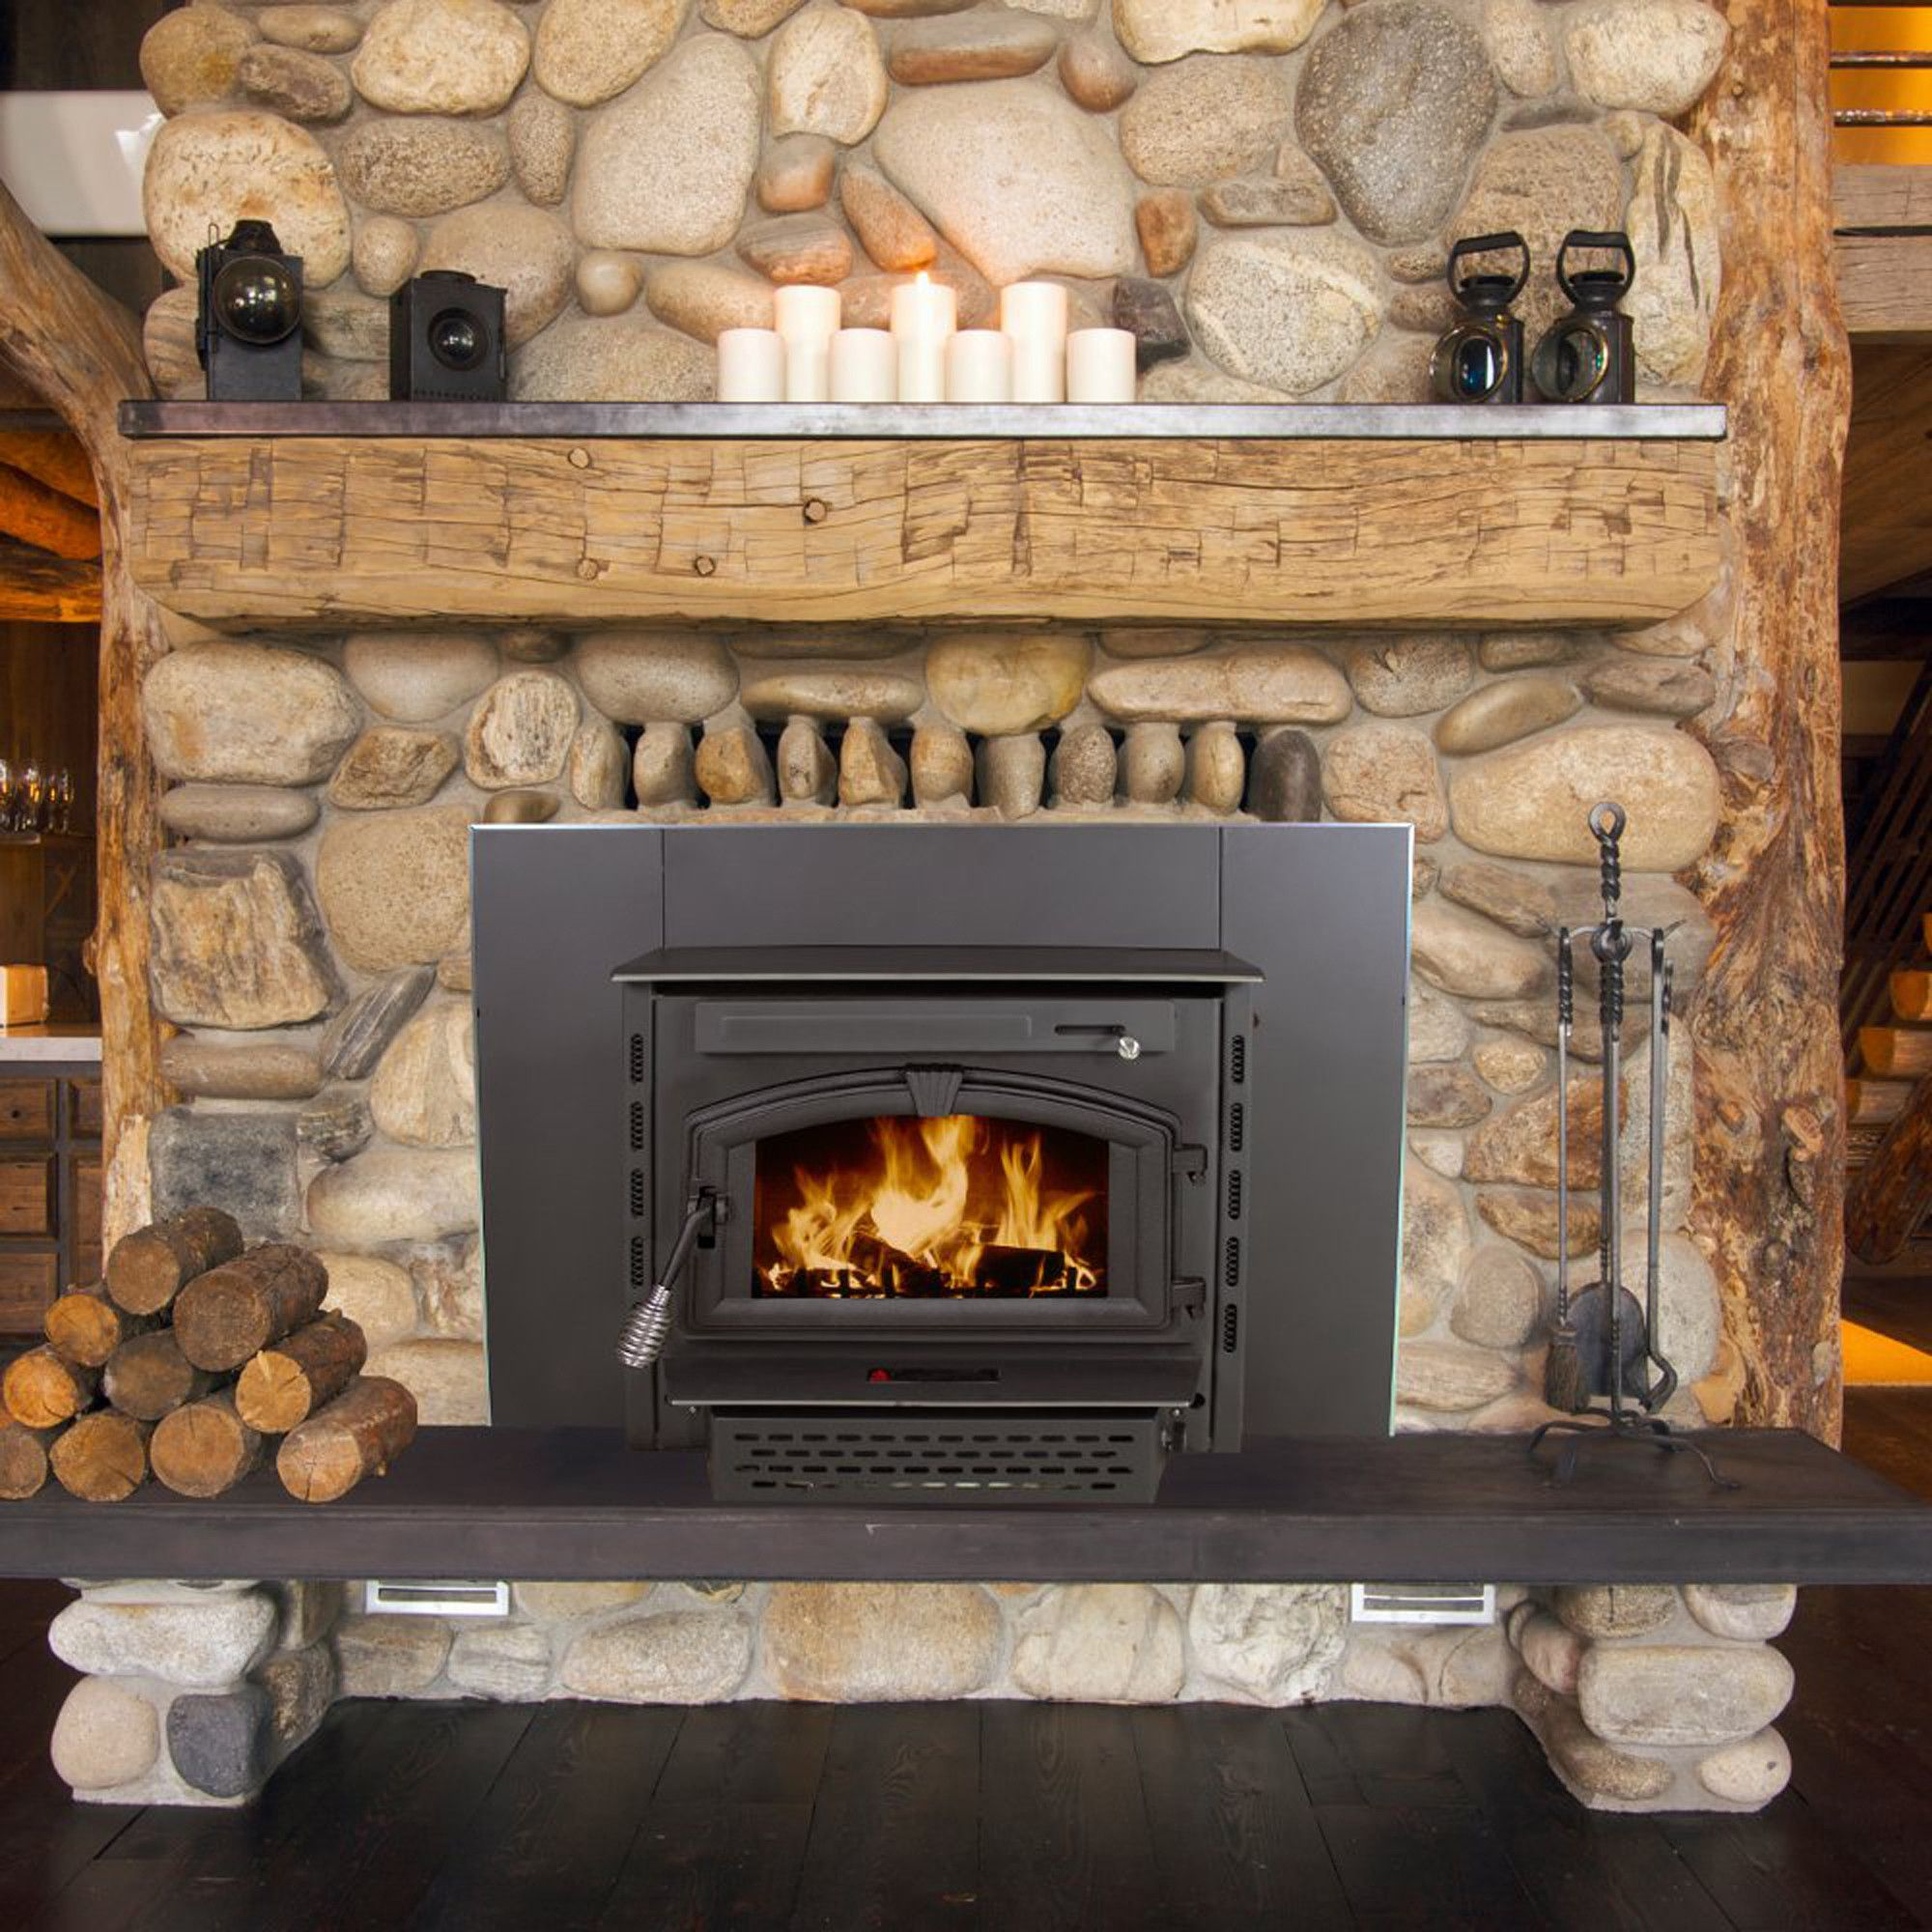 Recessed Wall Mounted Wood Burning Fireplace Insert Only